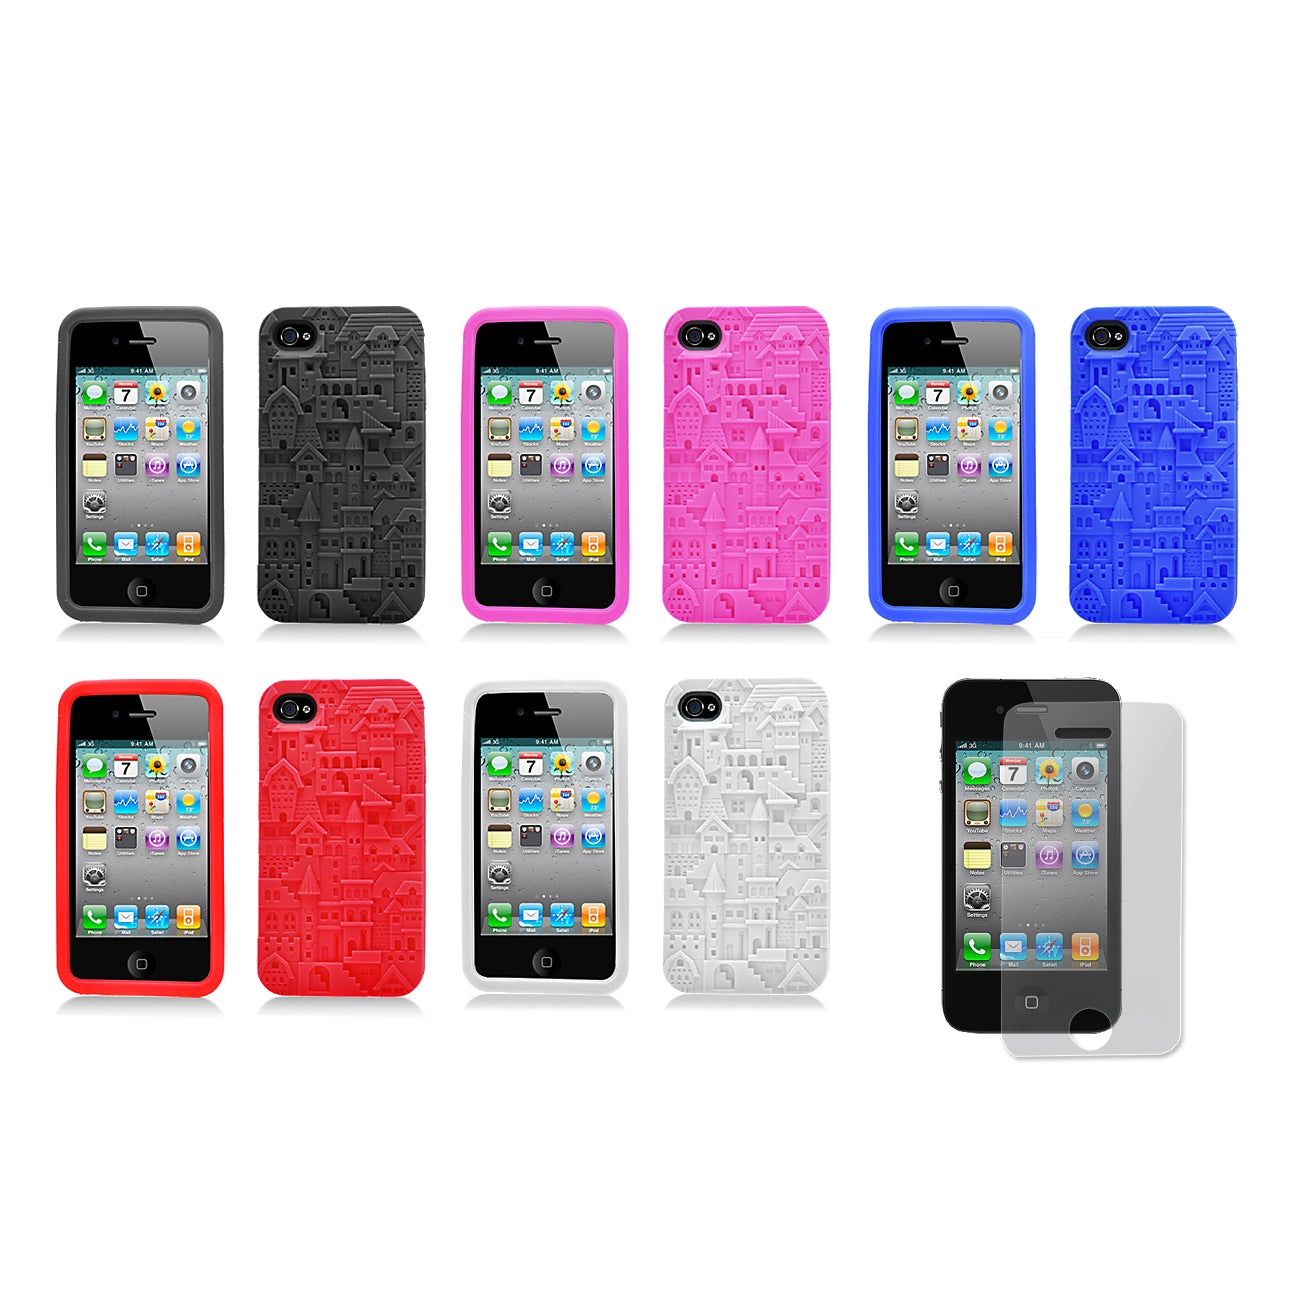 Apple iPhone 4/4S Castle Design Silicone Skin Case and Screen Protector - Thumbnail 0